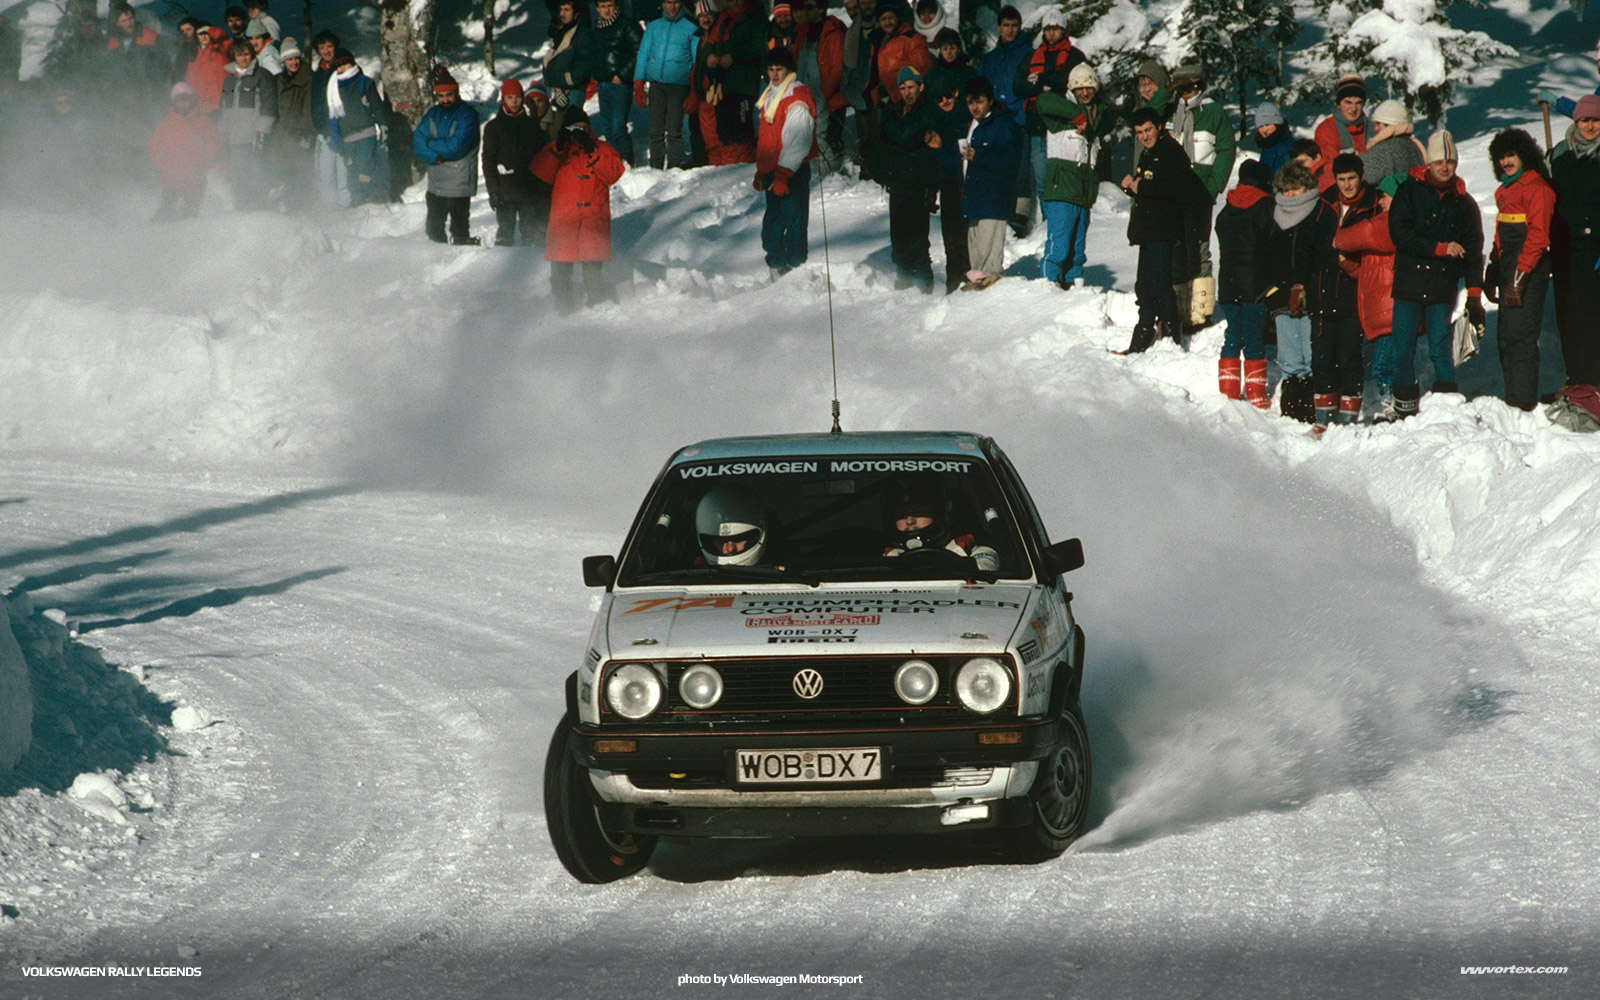 volkswagen-rally-legends-374